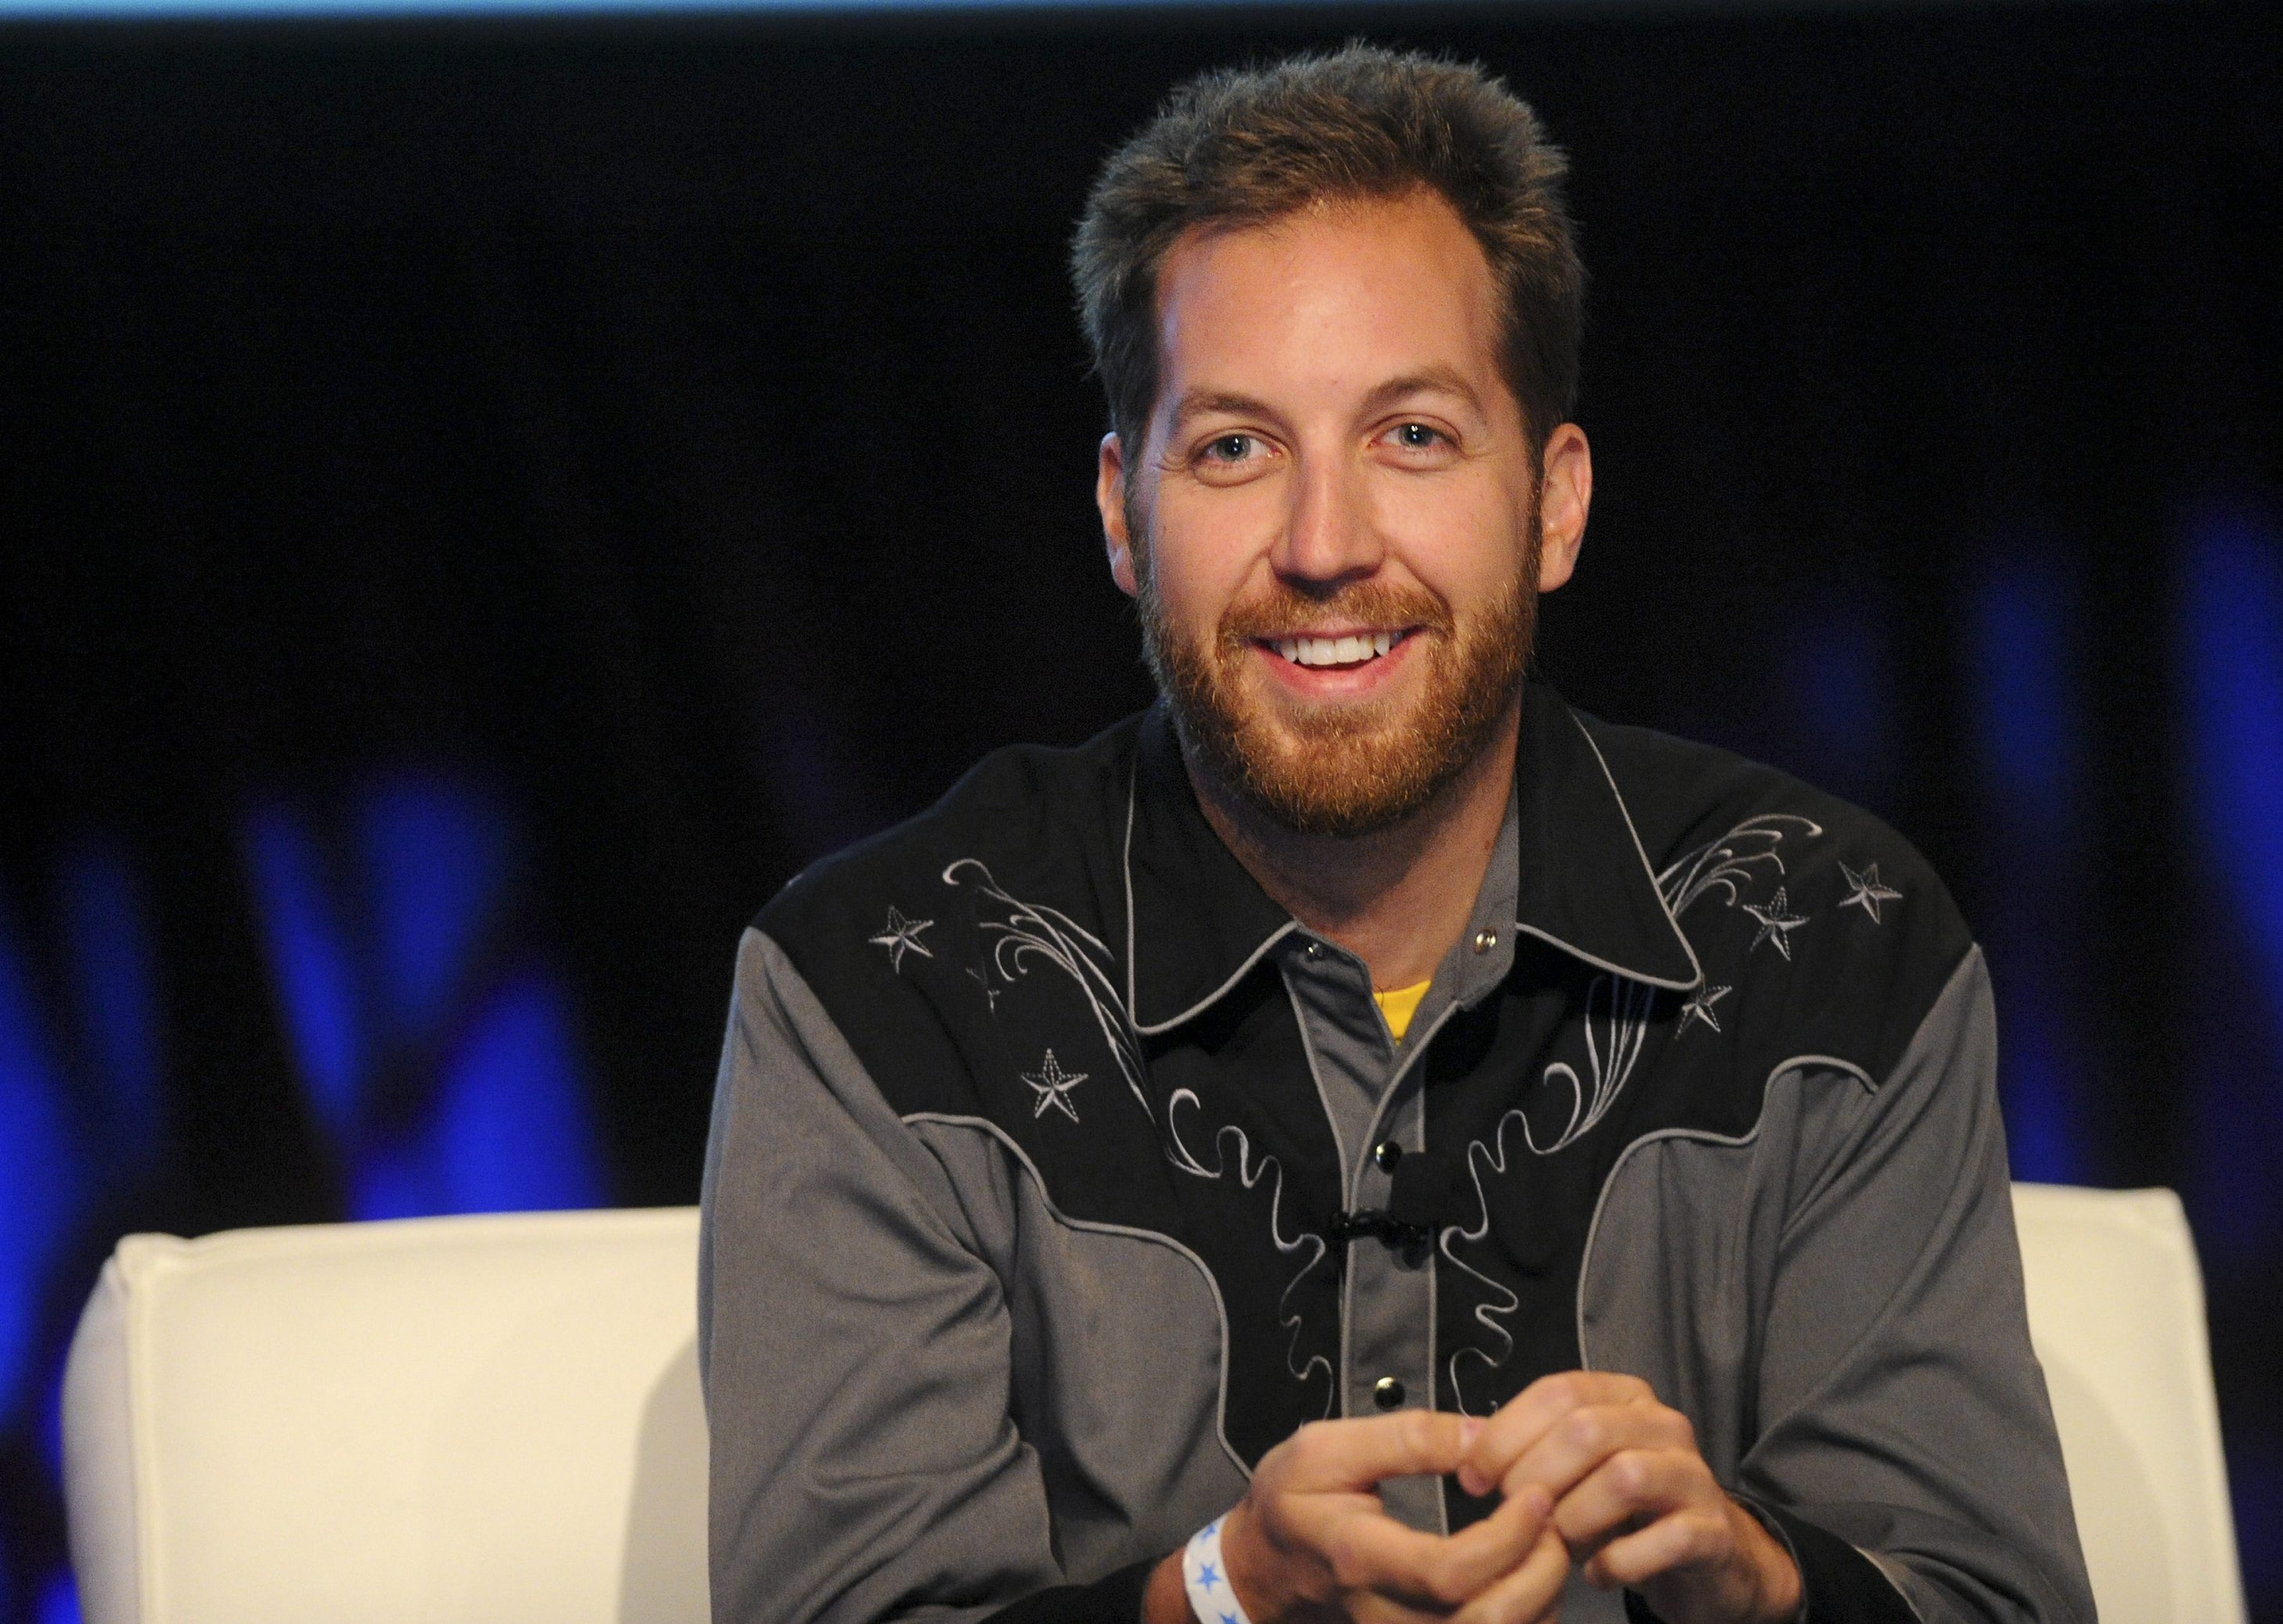 Chris Sacca's investment in the social network Twitter now has a value of around $1 billion.